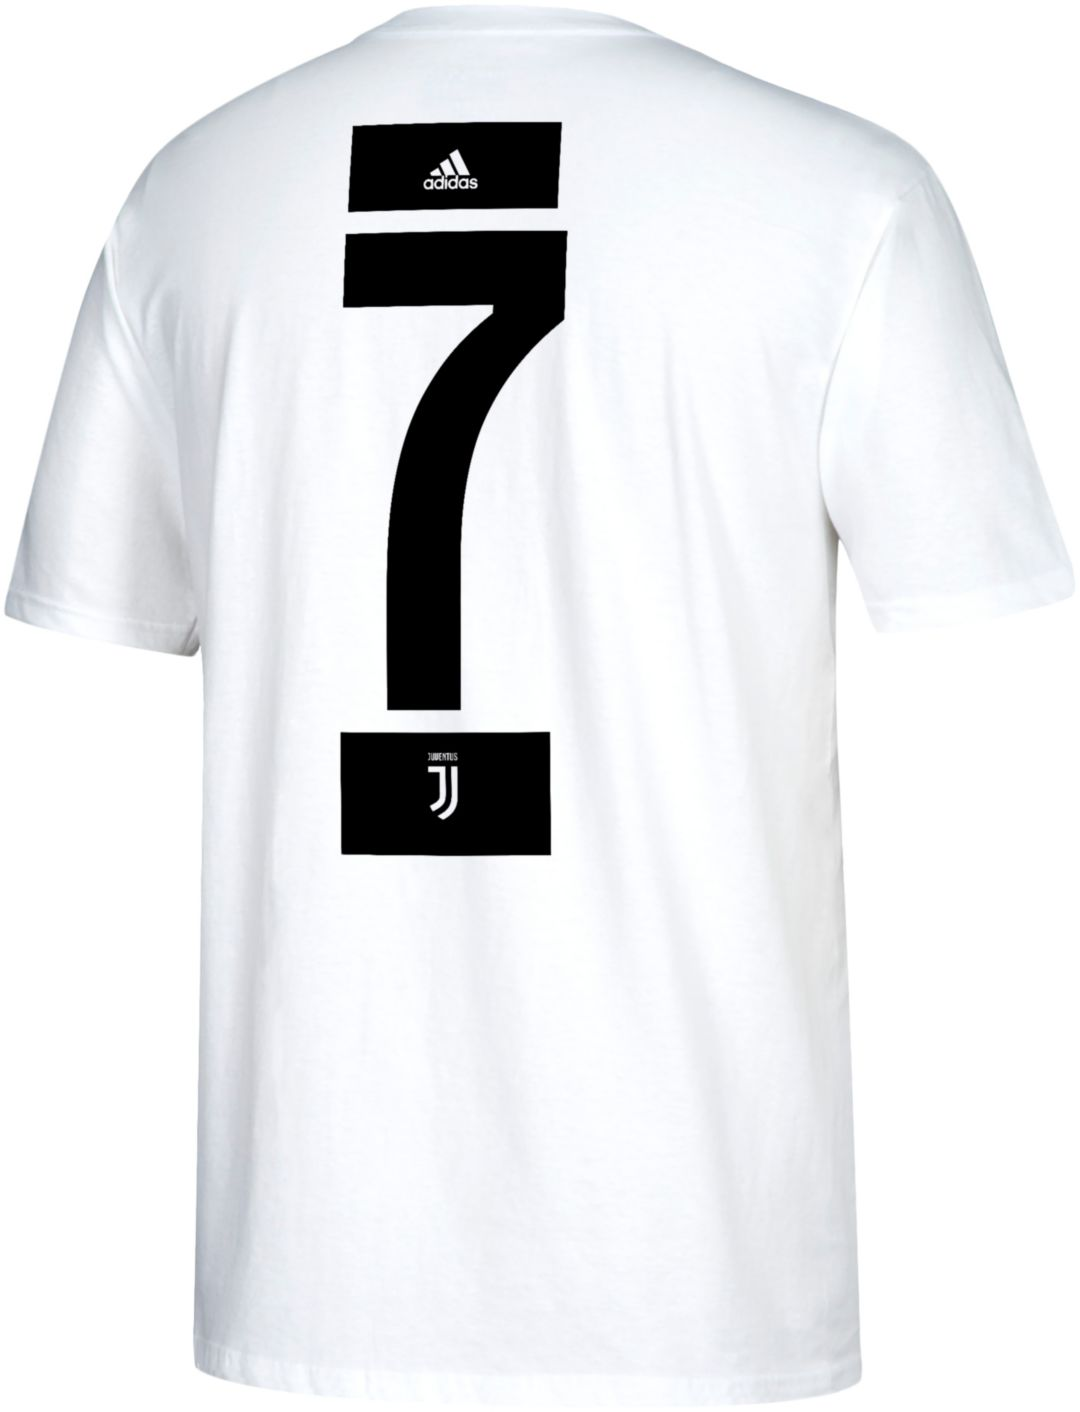 size 40 49651 8b682 adidas Men's Juventus Cristiano Ronaldo #7 White Player T-Shirt